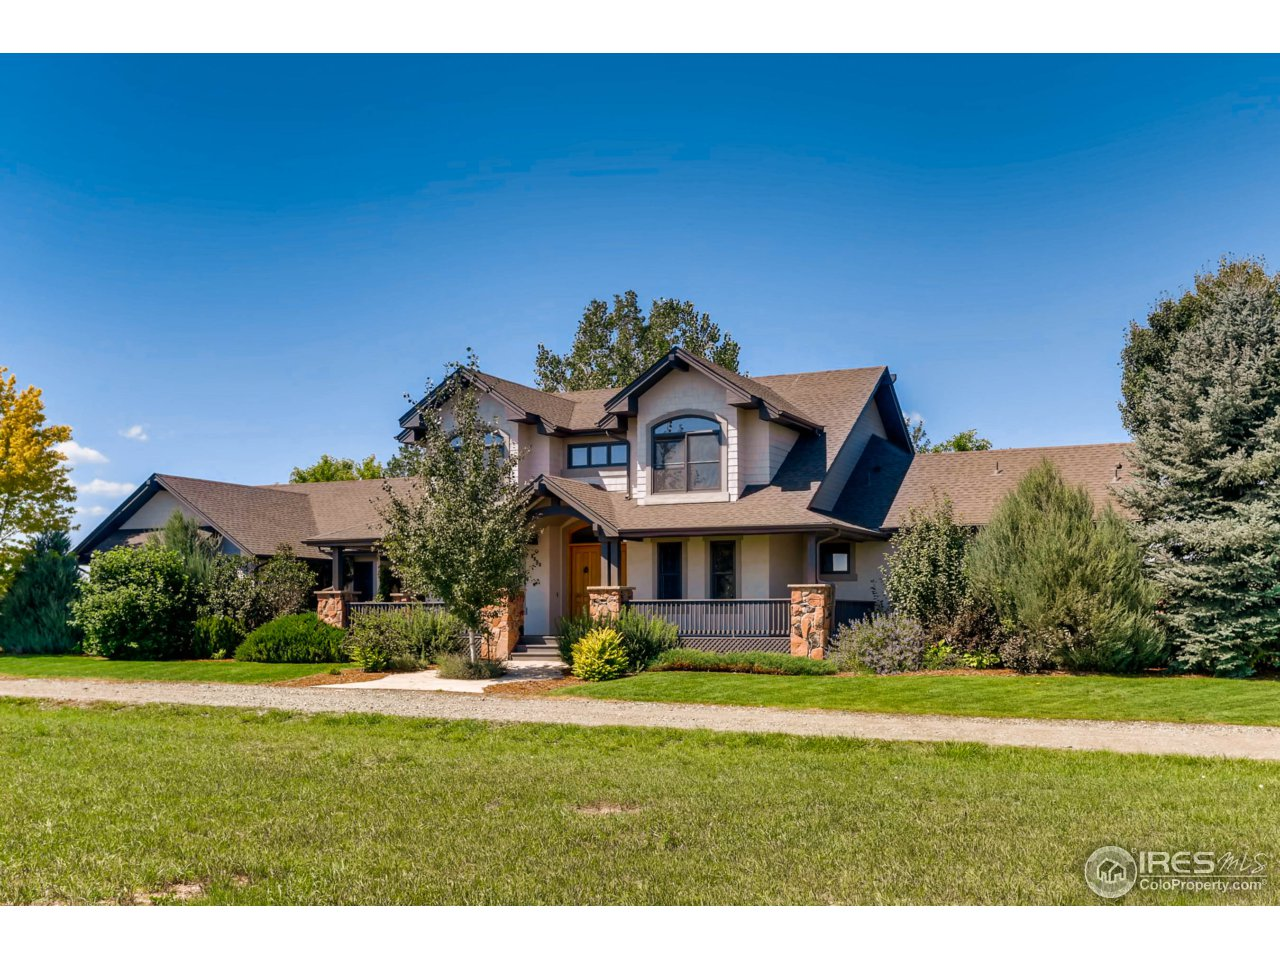 8850 N County Line Rd, Longmont, CO 80503